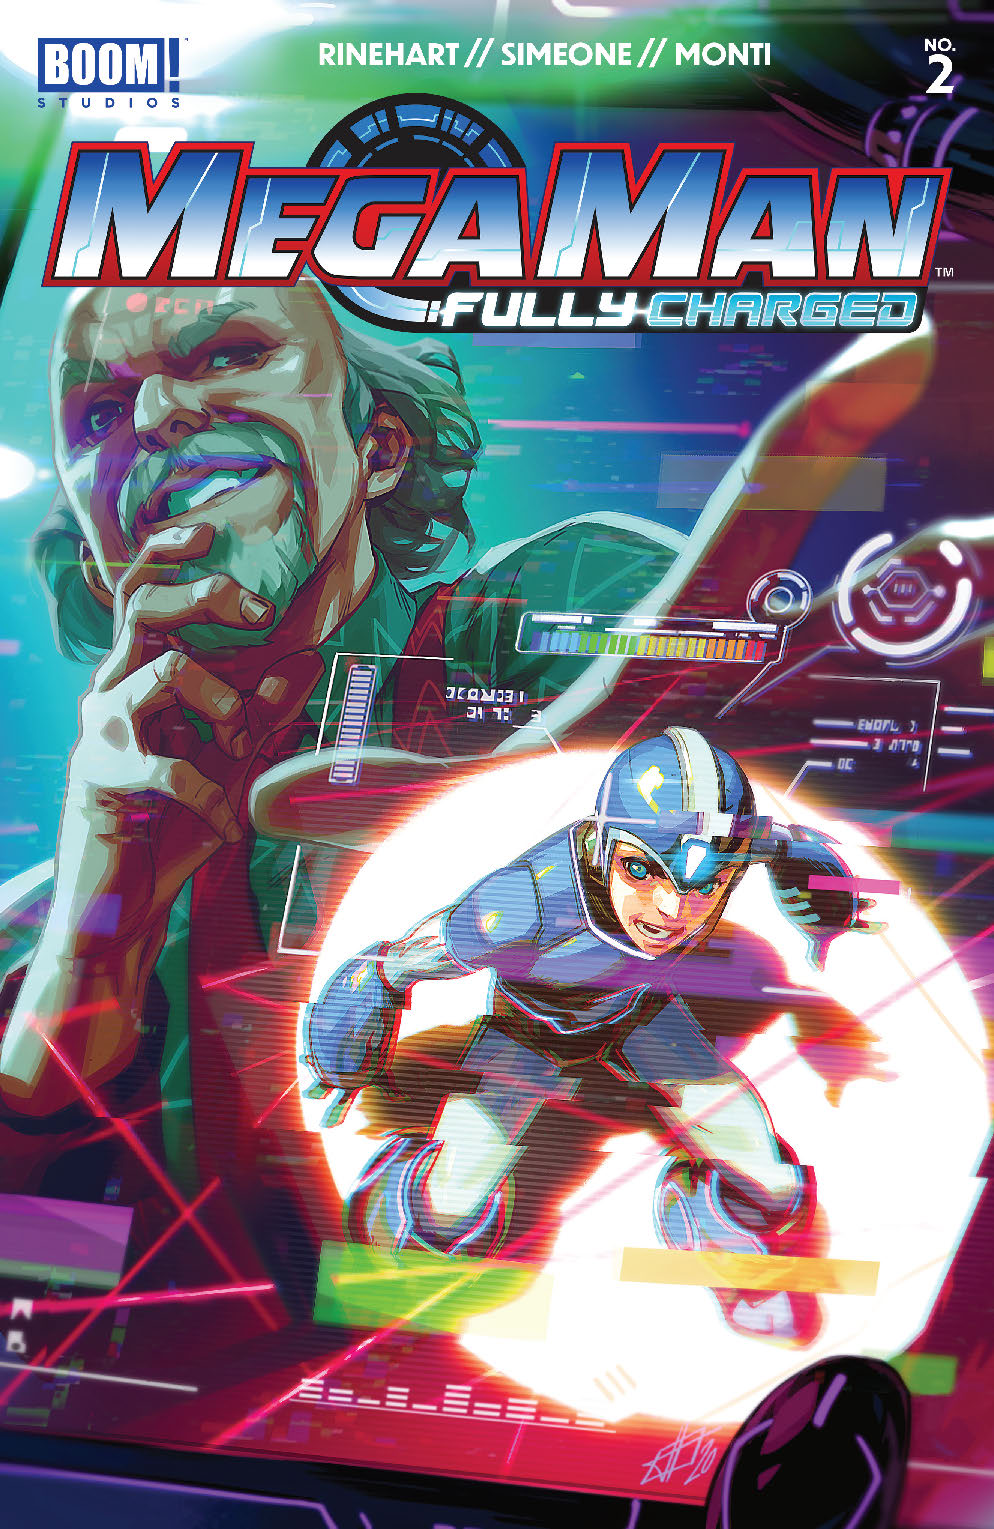 Mega-Man Fully Charged #2 Review